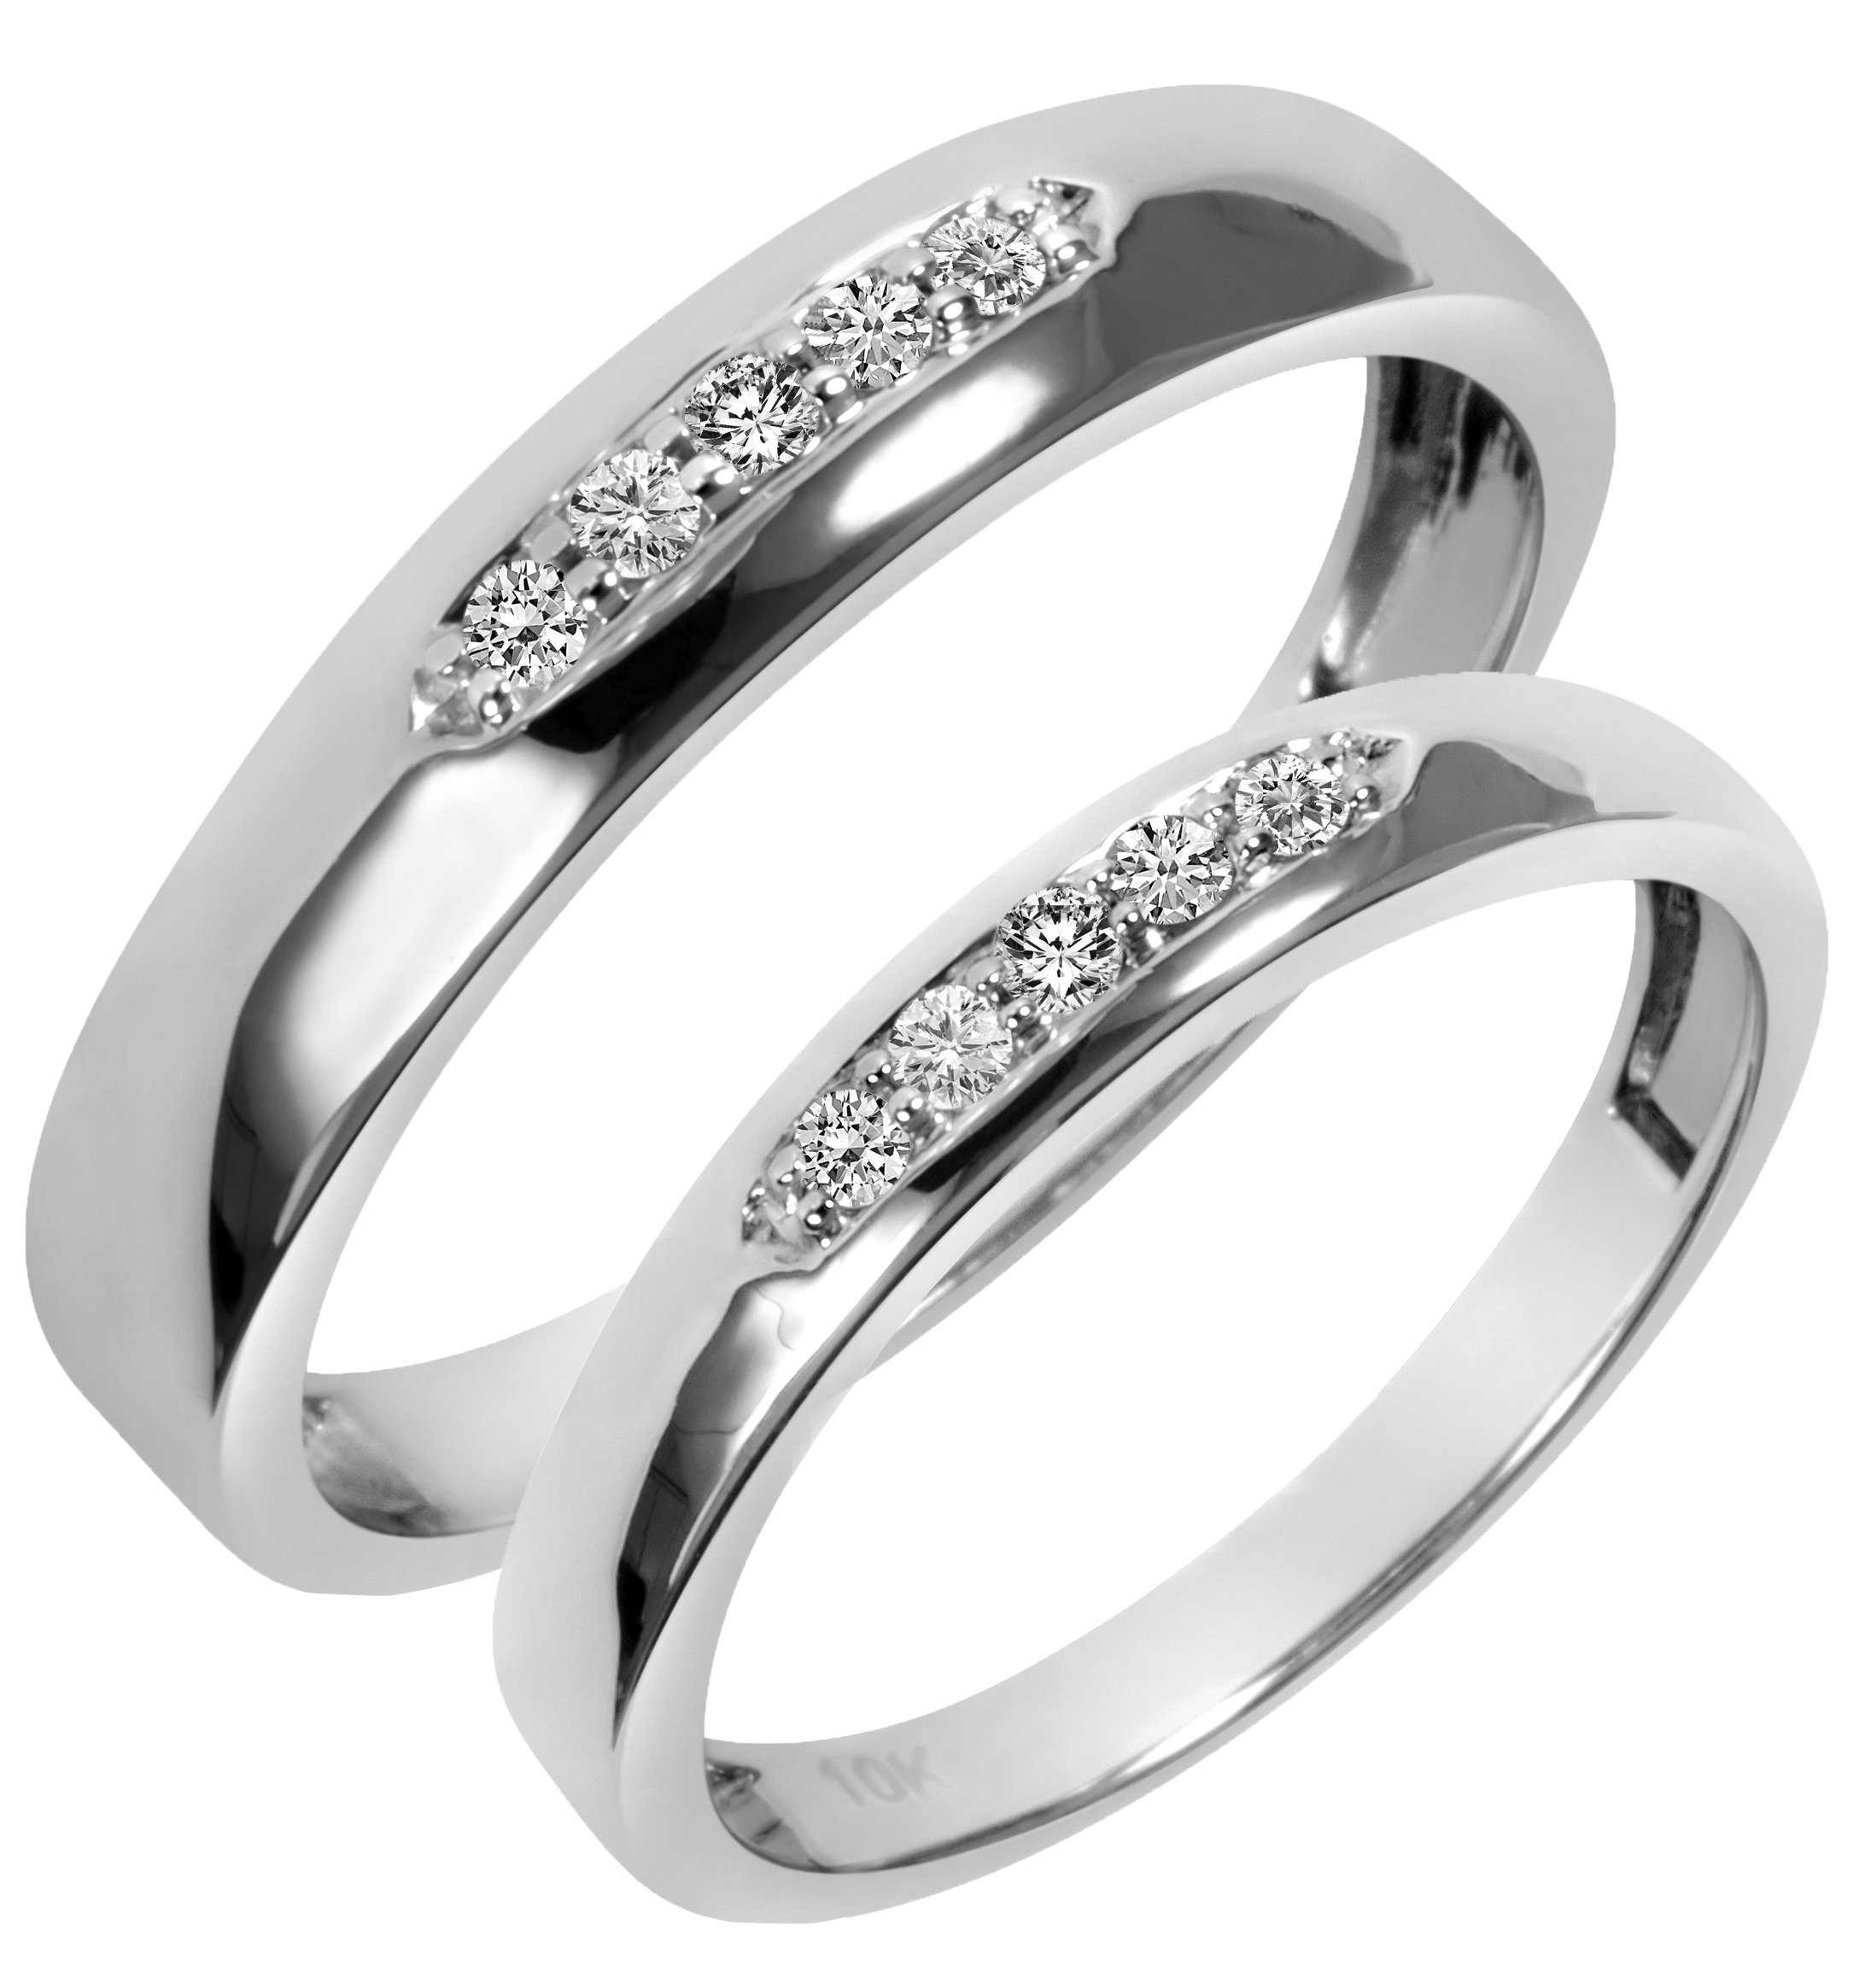 15 Carat TW Diamond His And Hers Wedding Band Set 14K White Gold